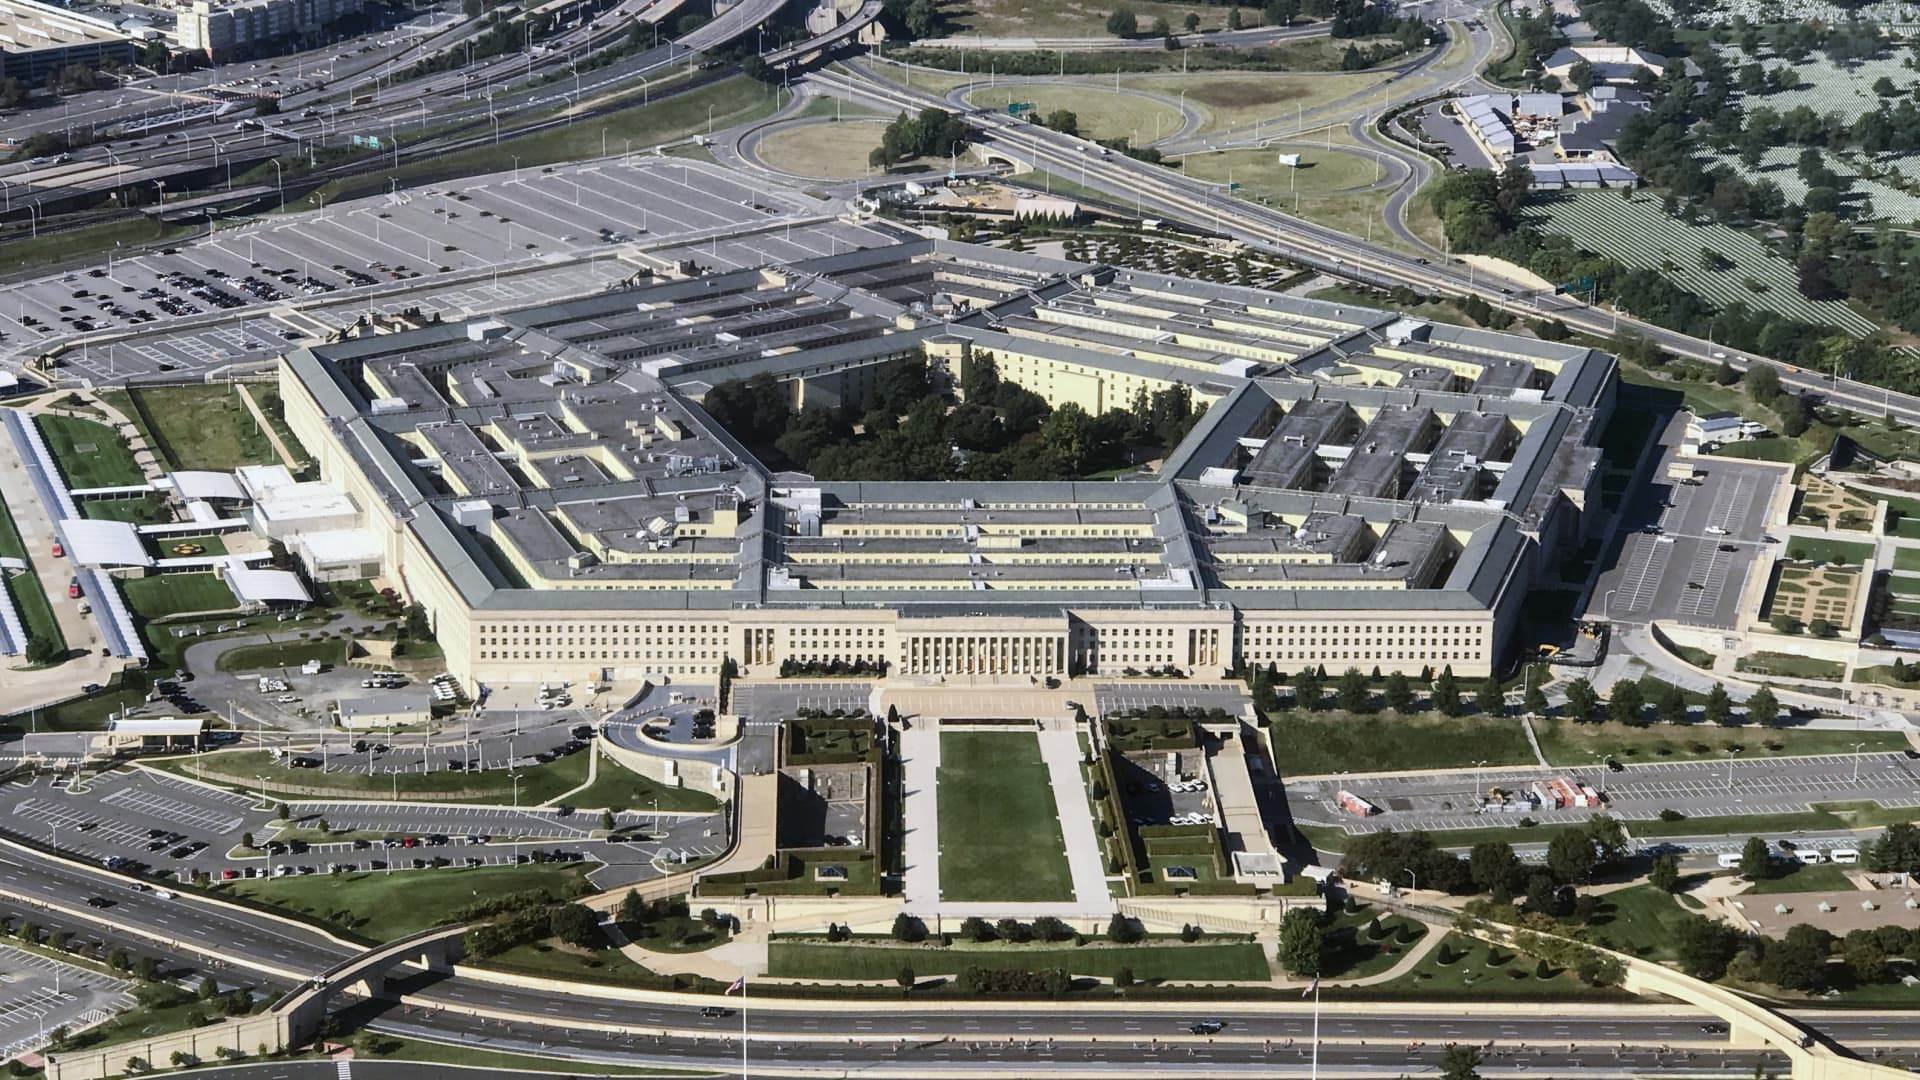 Aerial view of the Pentagon building photographed on Sept. 24, 2017.